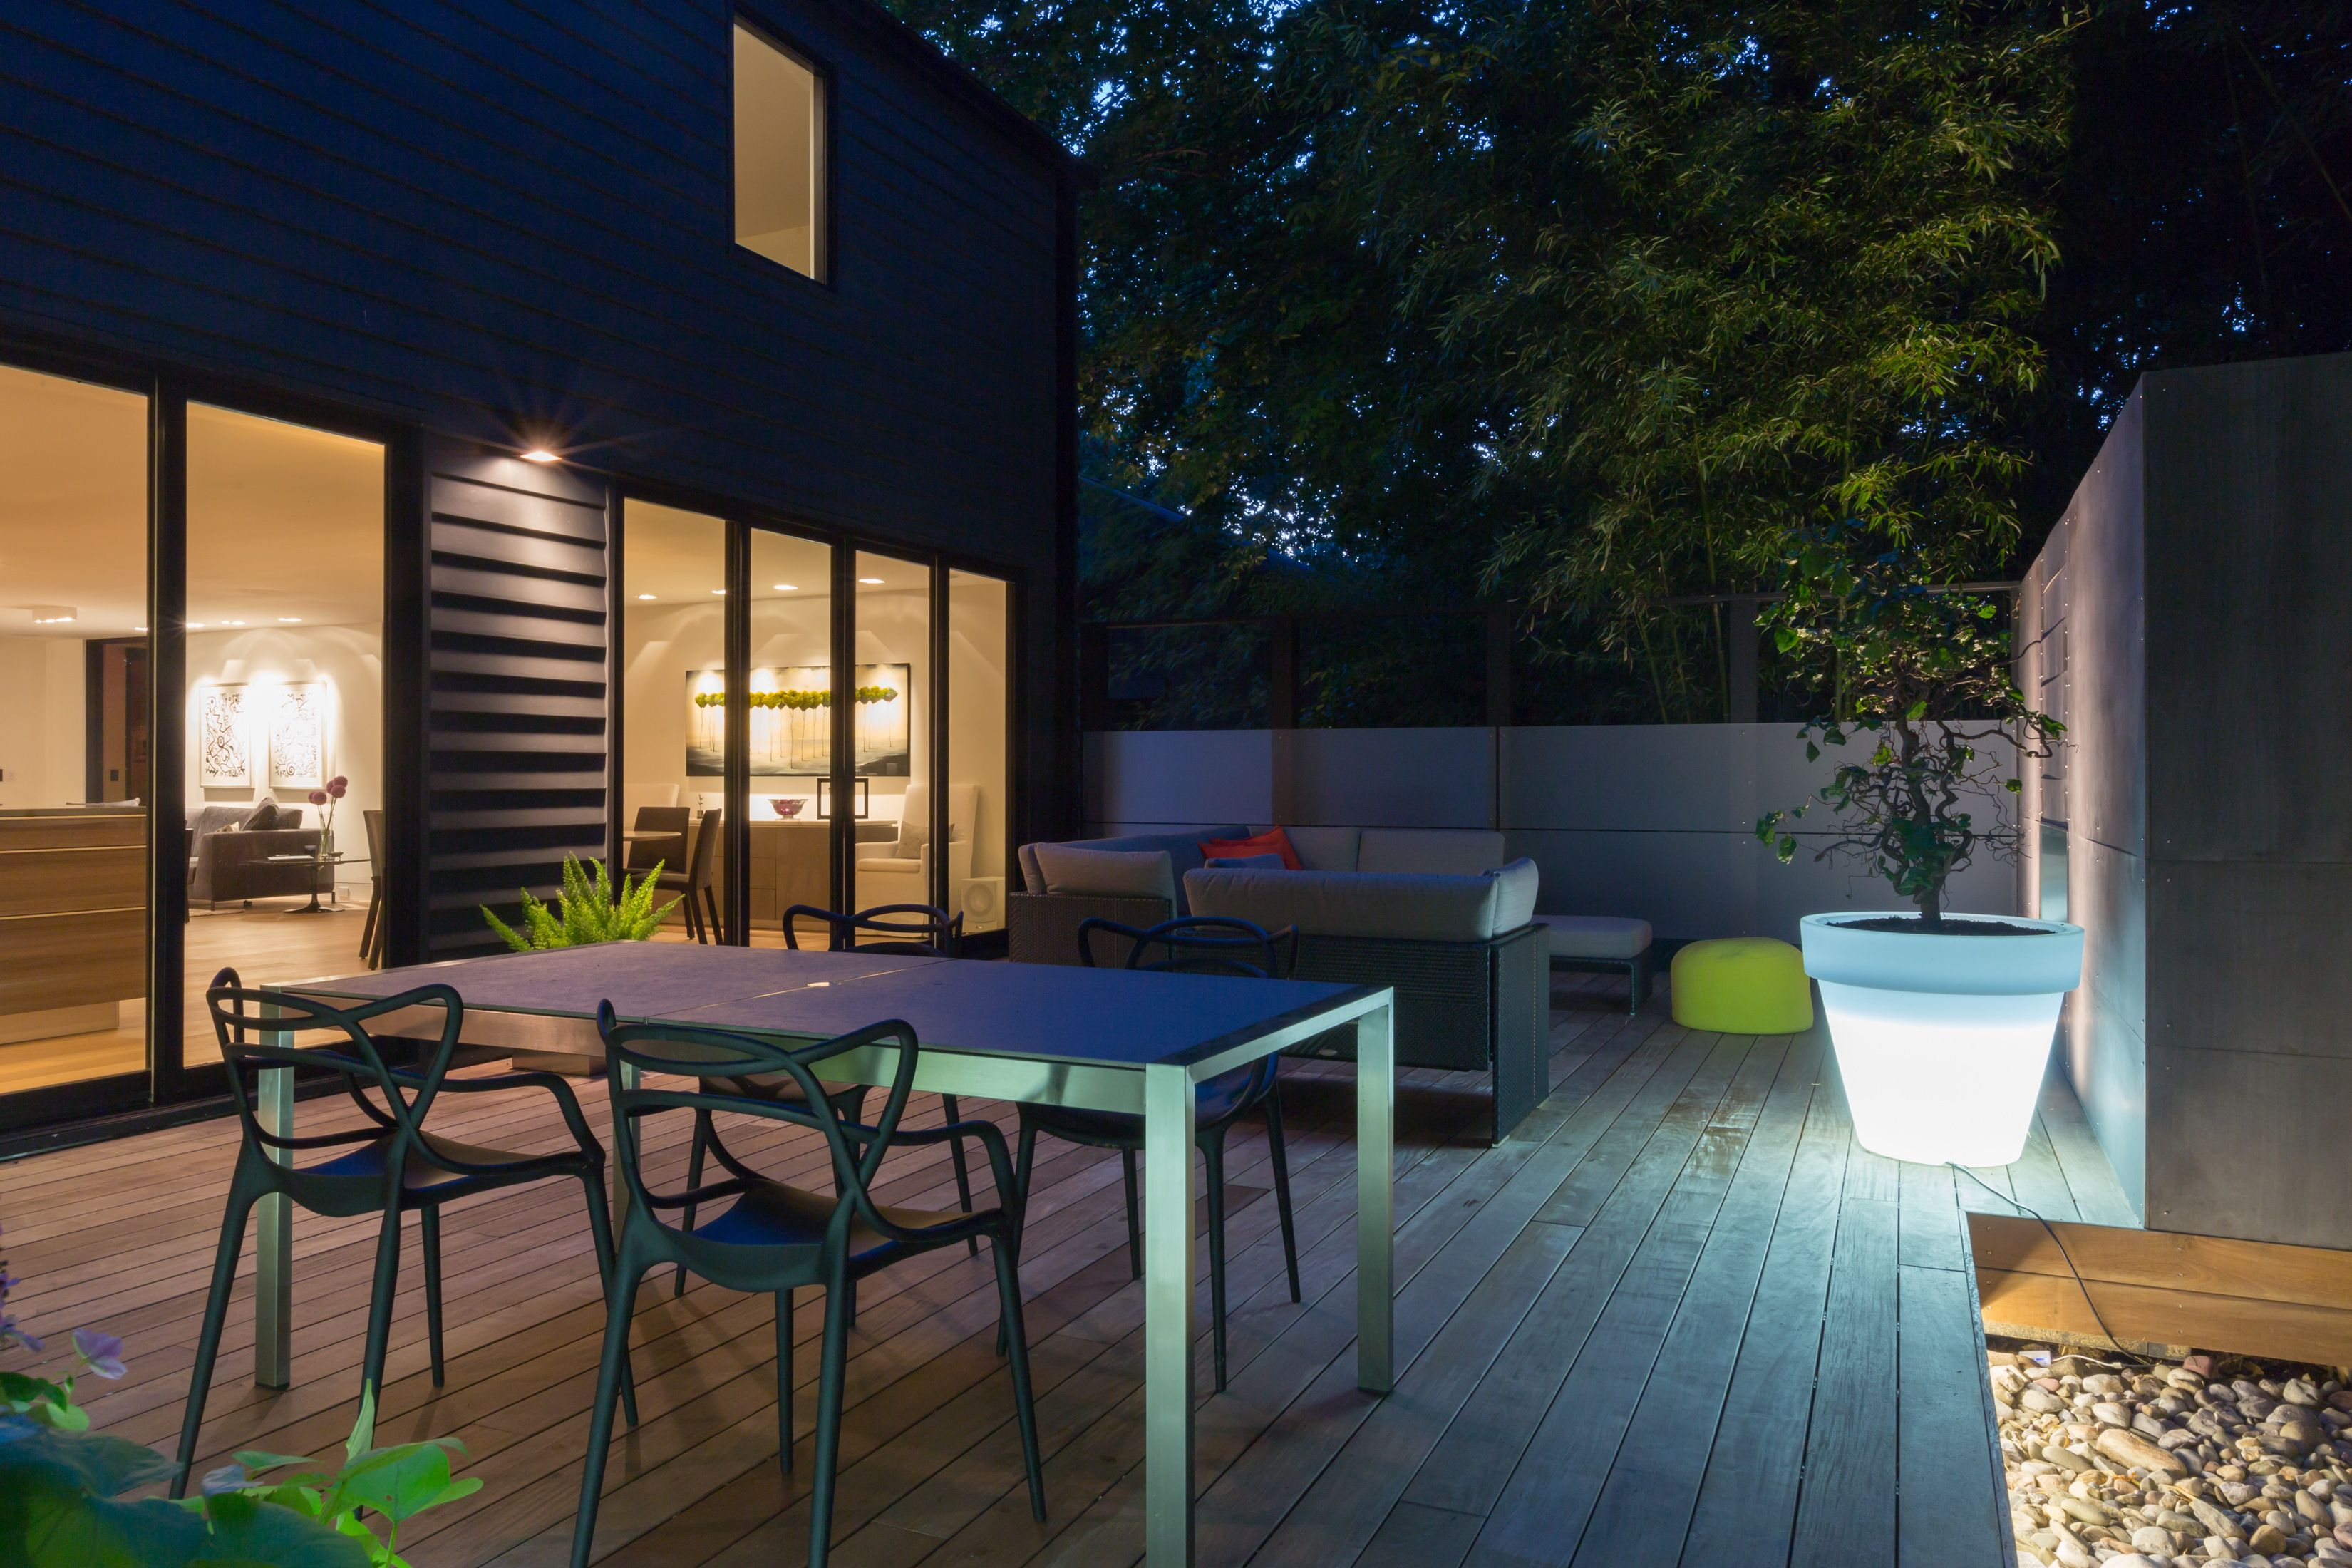 Modern lounge Ipe deck with large glowing planters illuminated